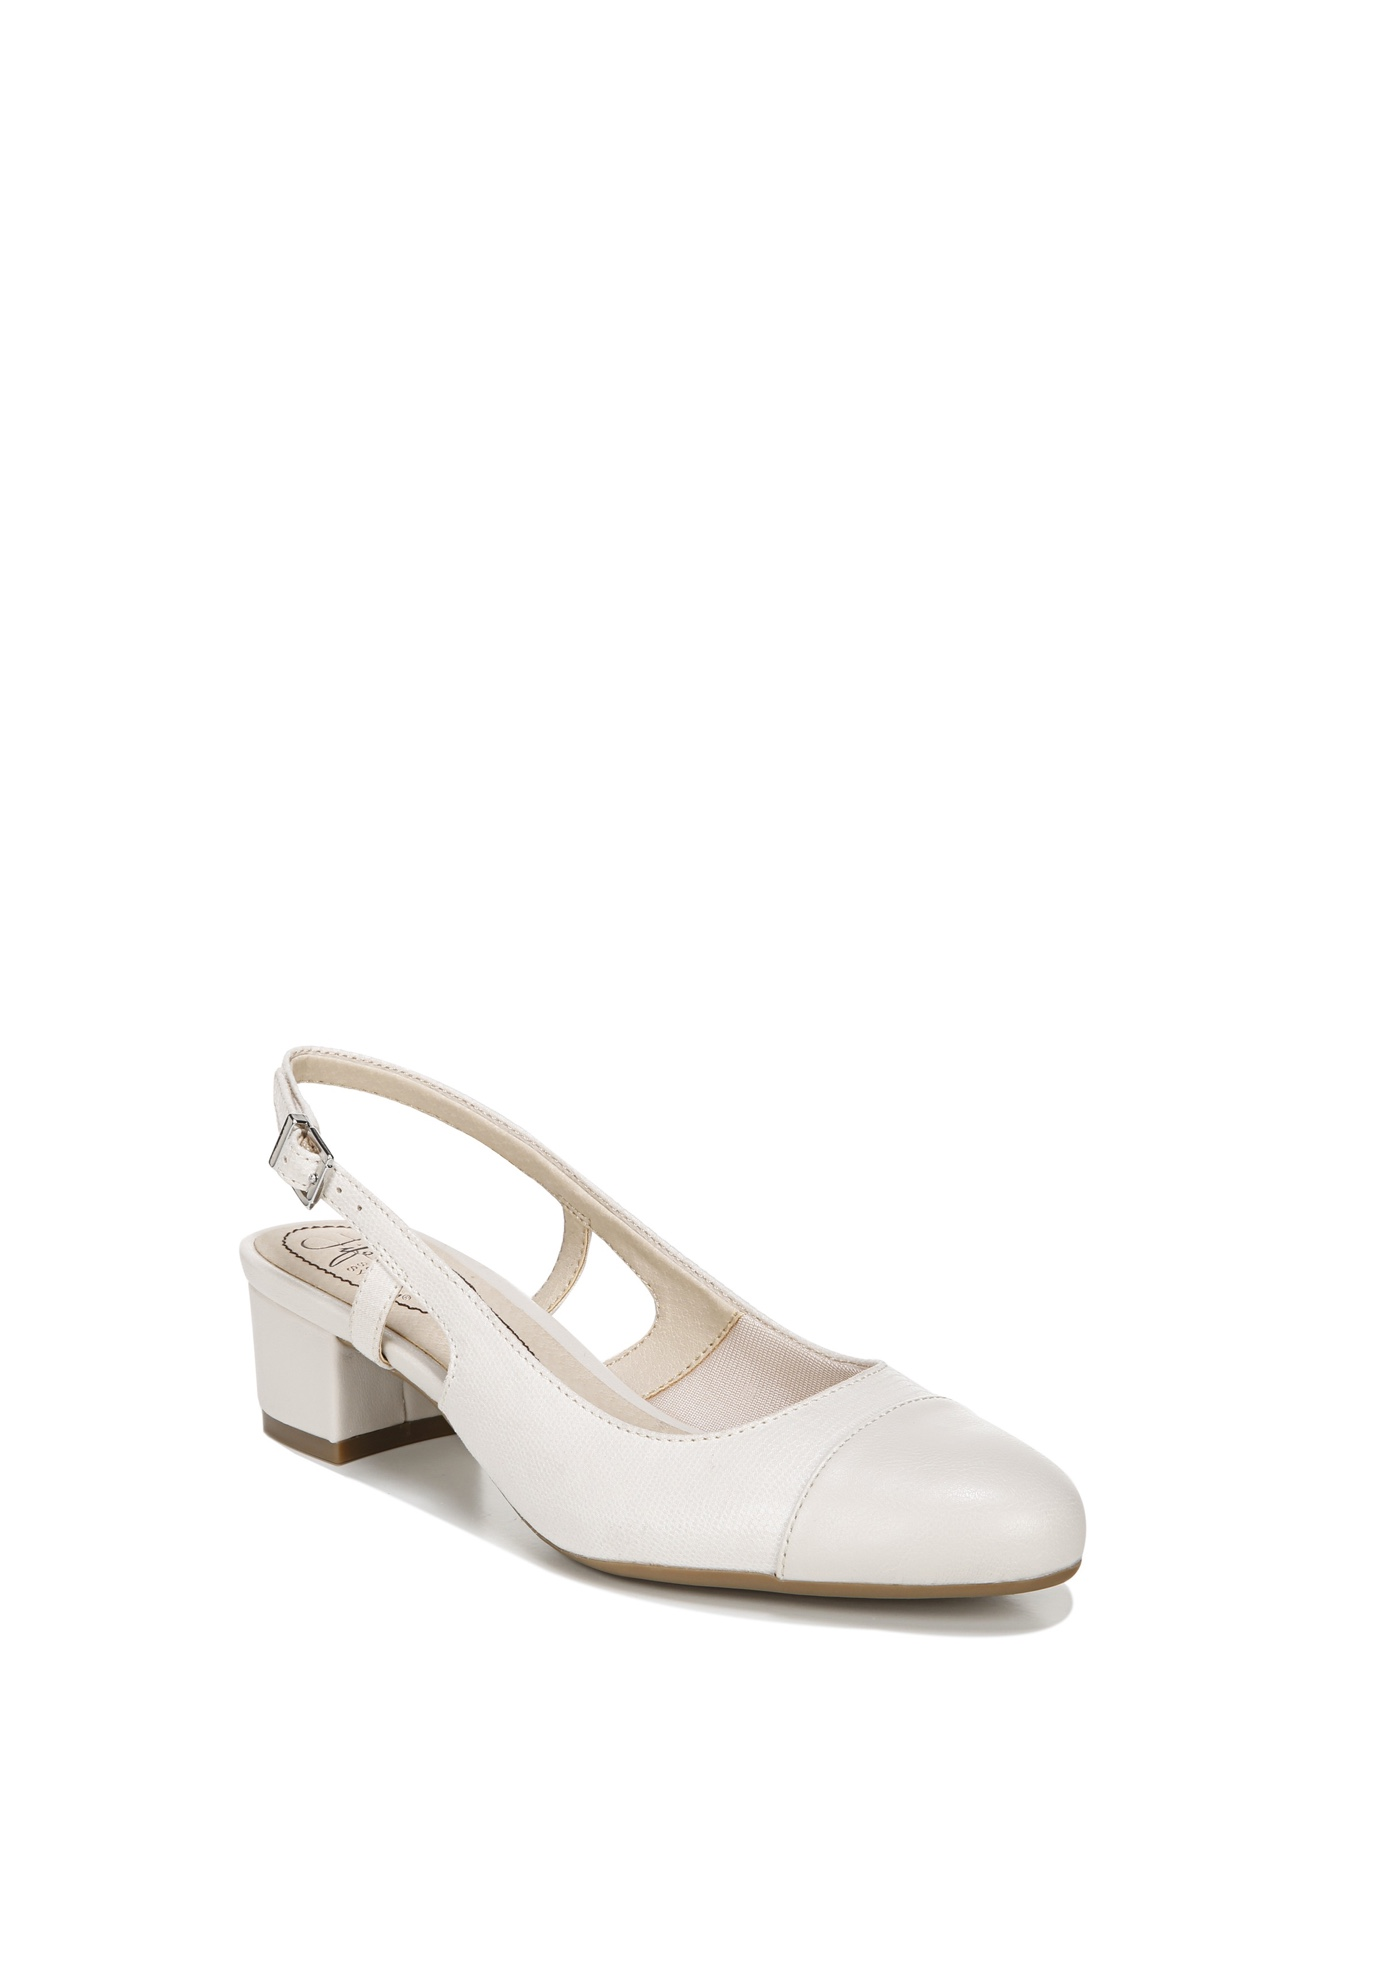 Everdeen Pumps by LifeStride,